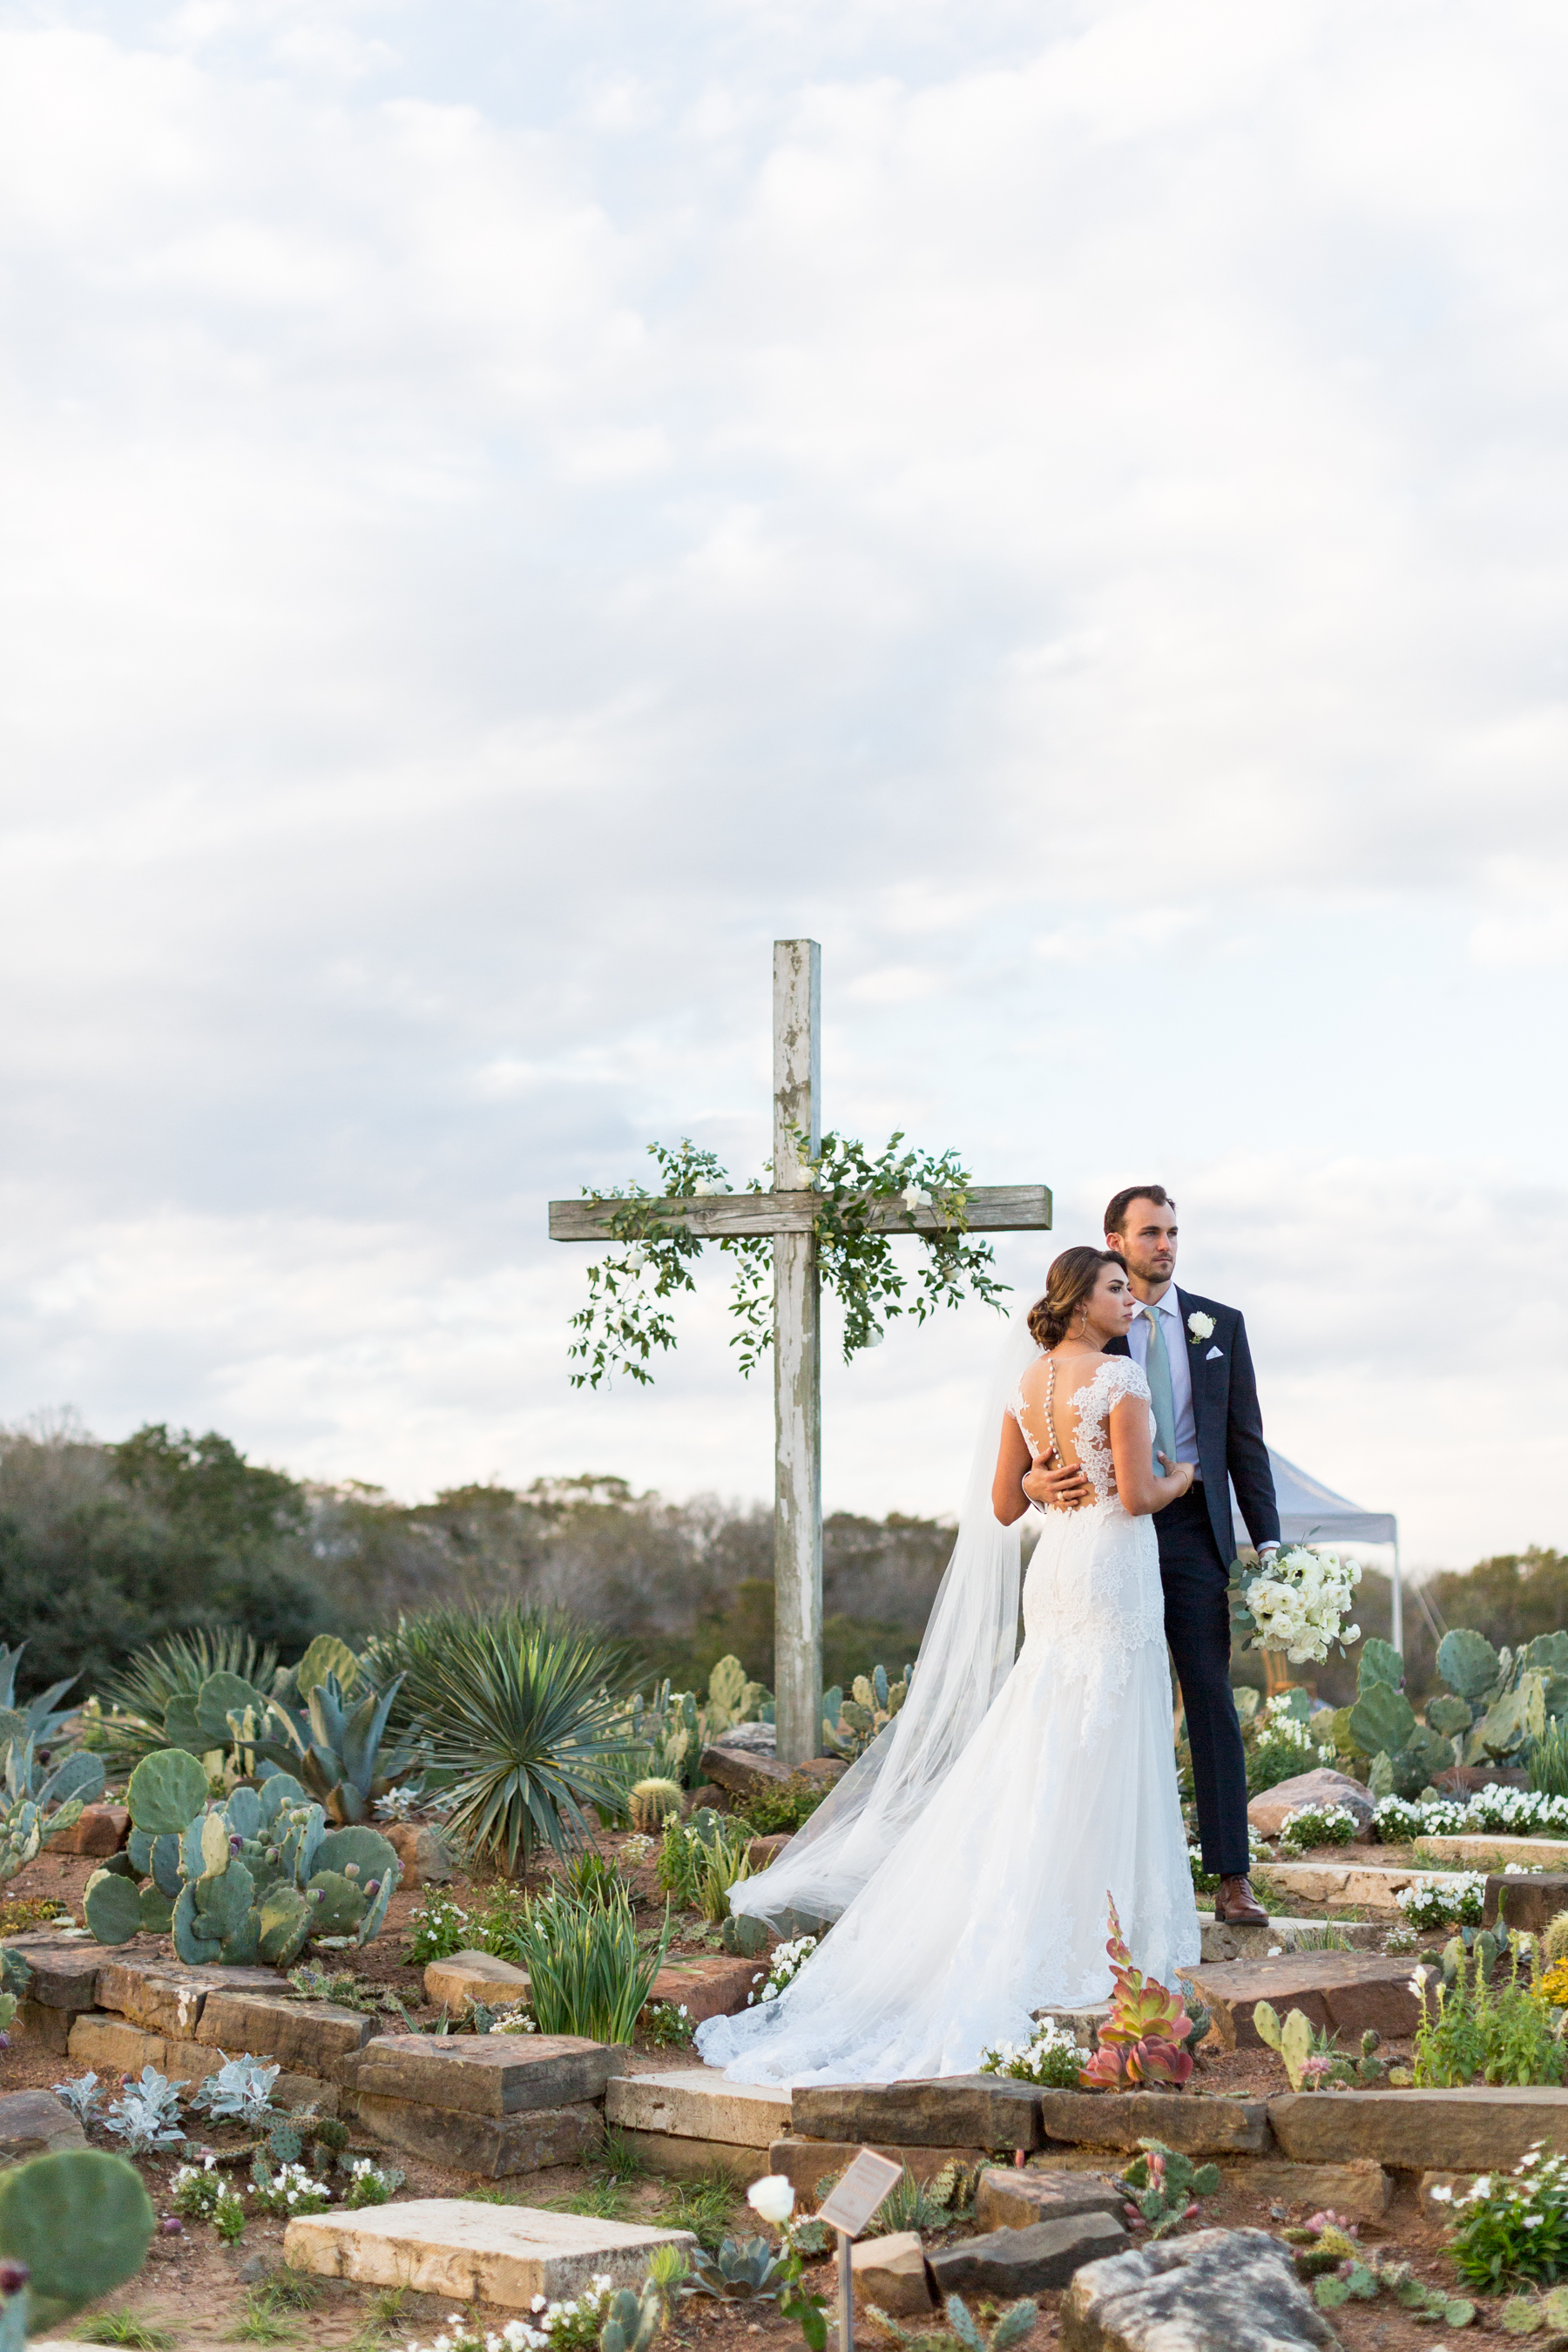 Bride and Groom at their cactus garden ceremony site